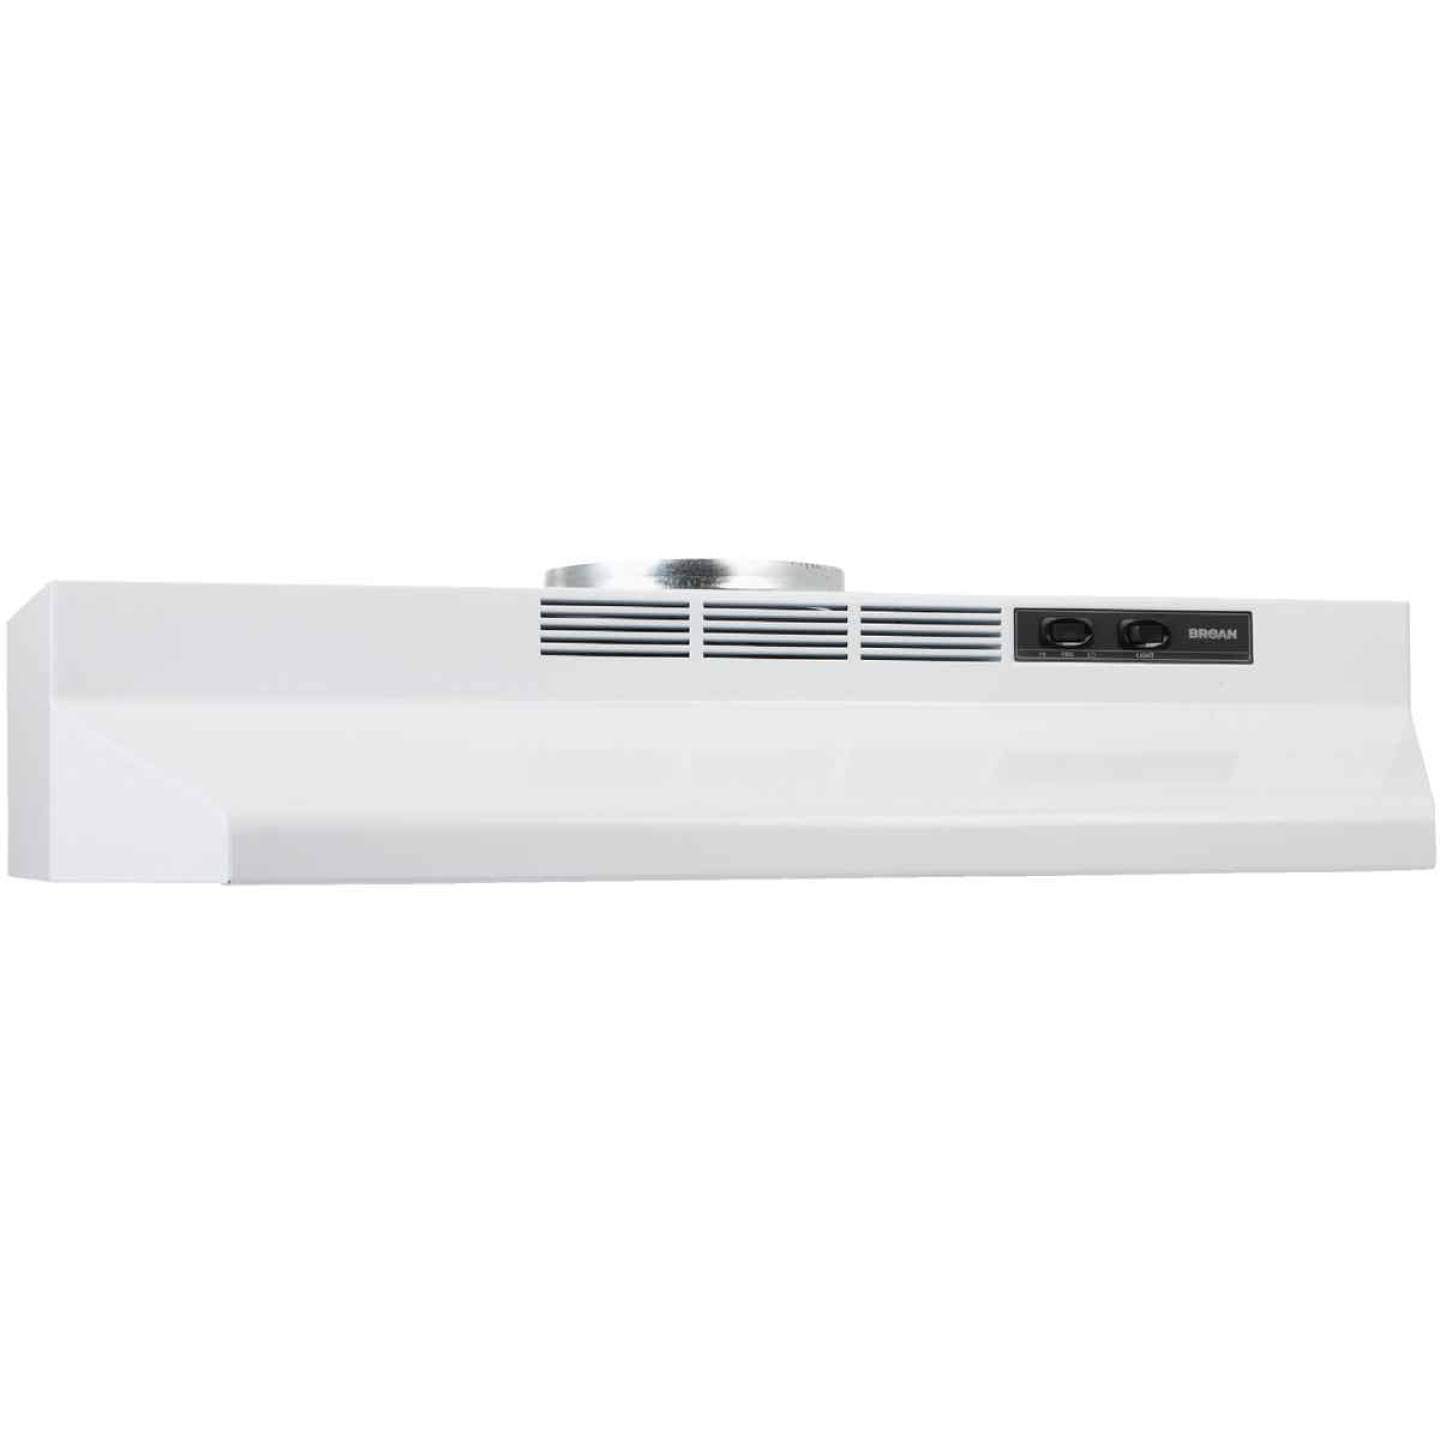 Broan-Nutone F Series 30 In. Convertible White Range Hood Image 3